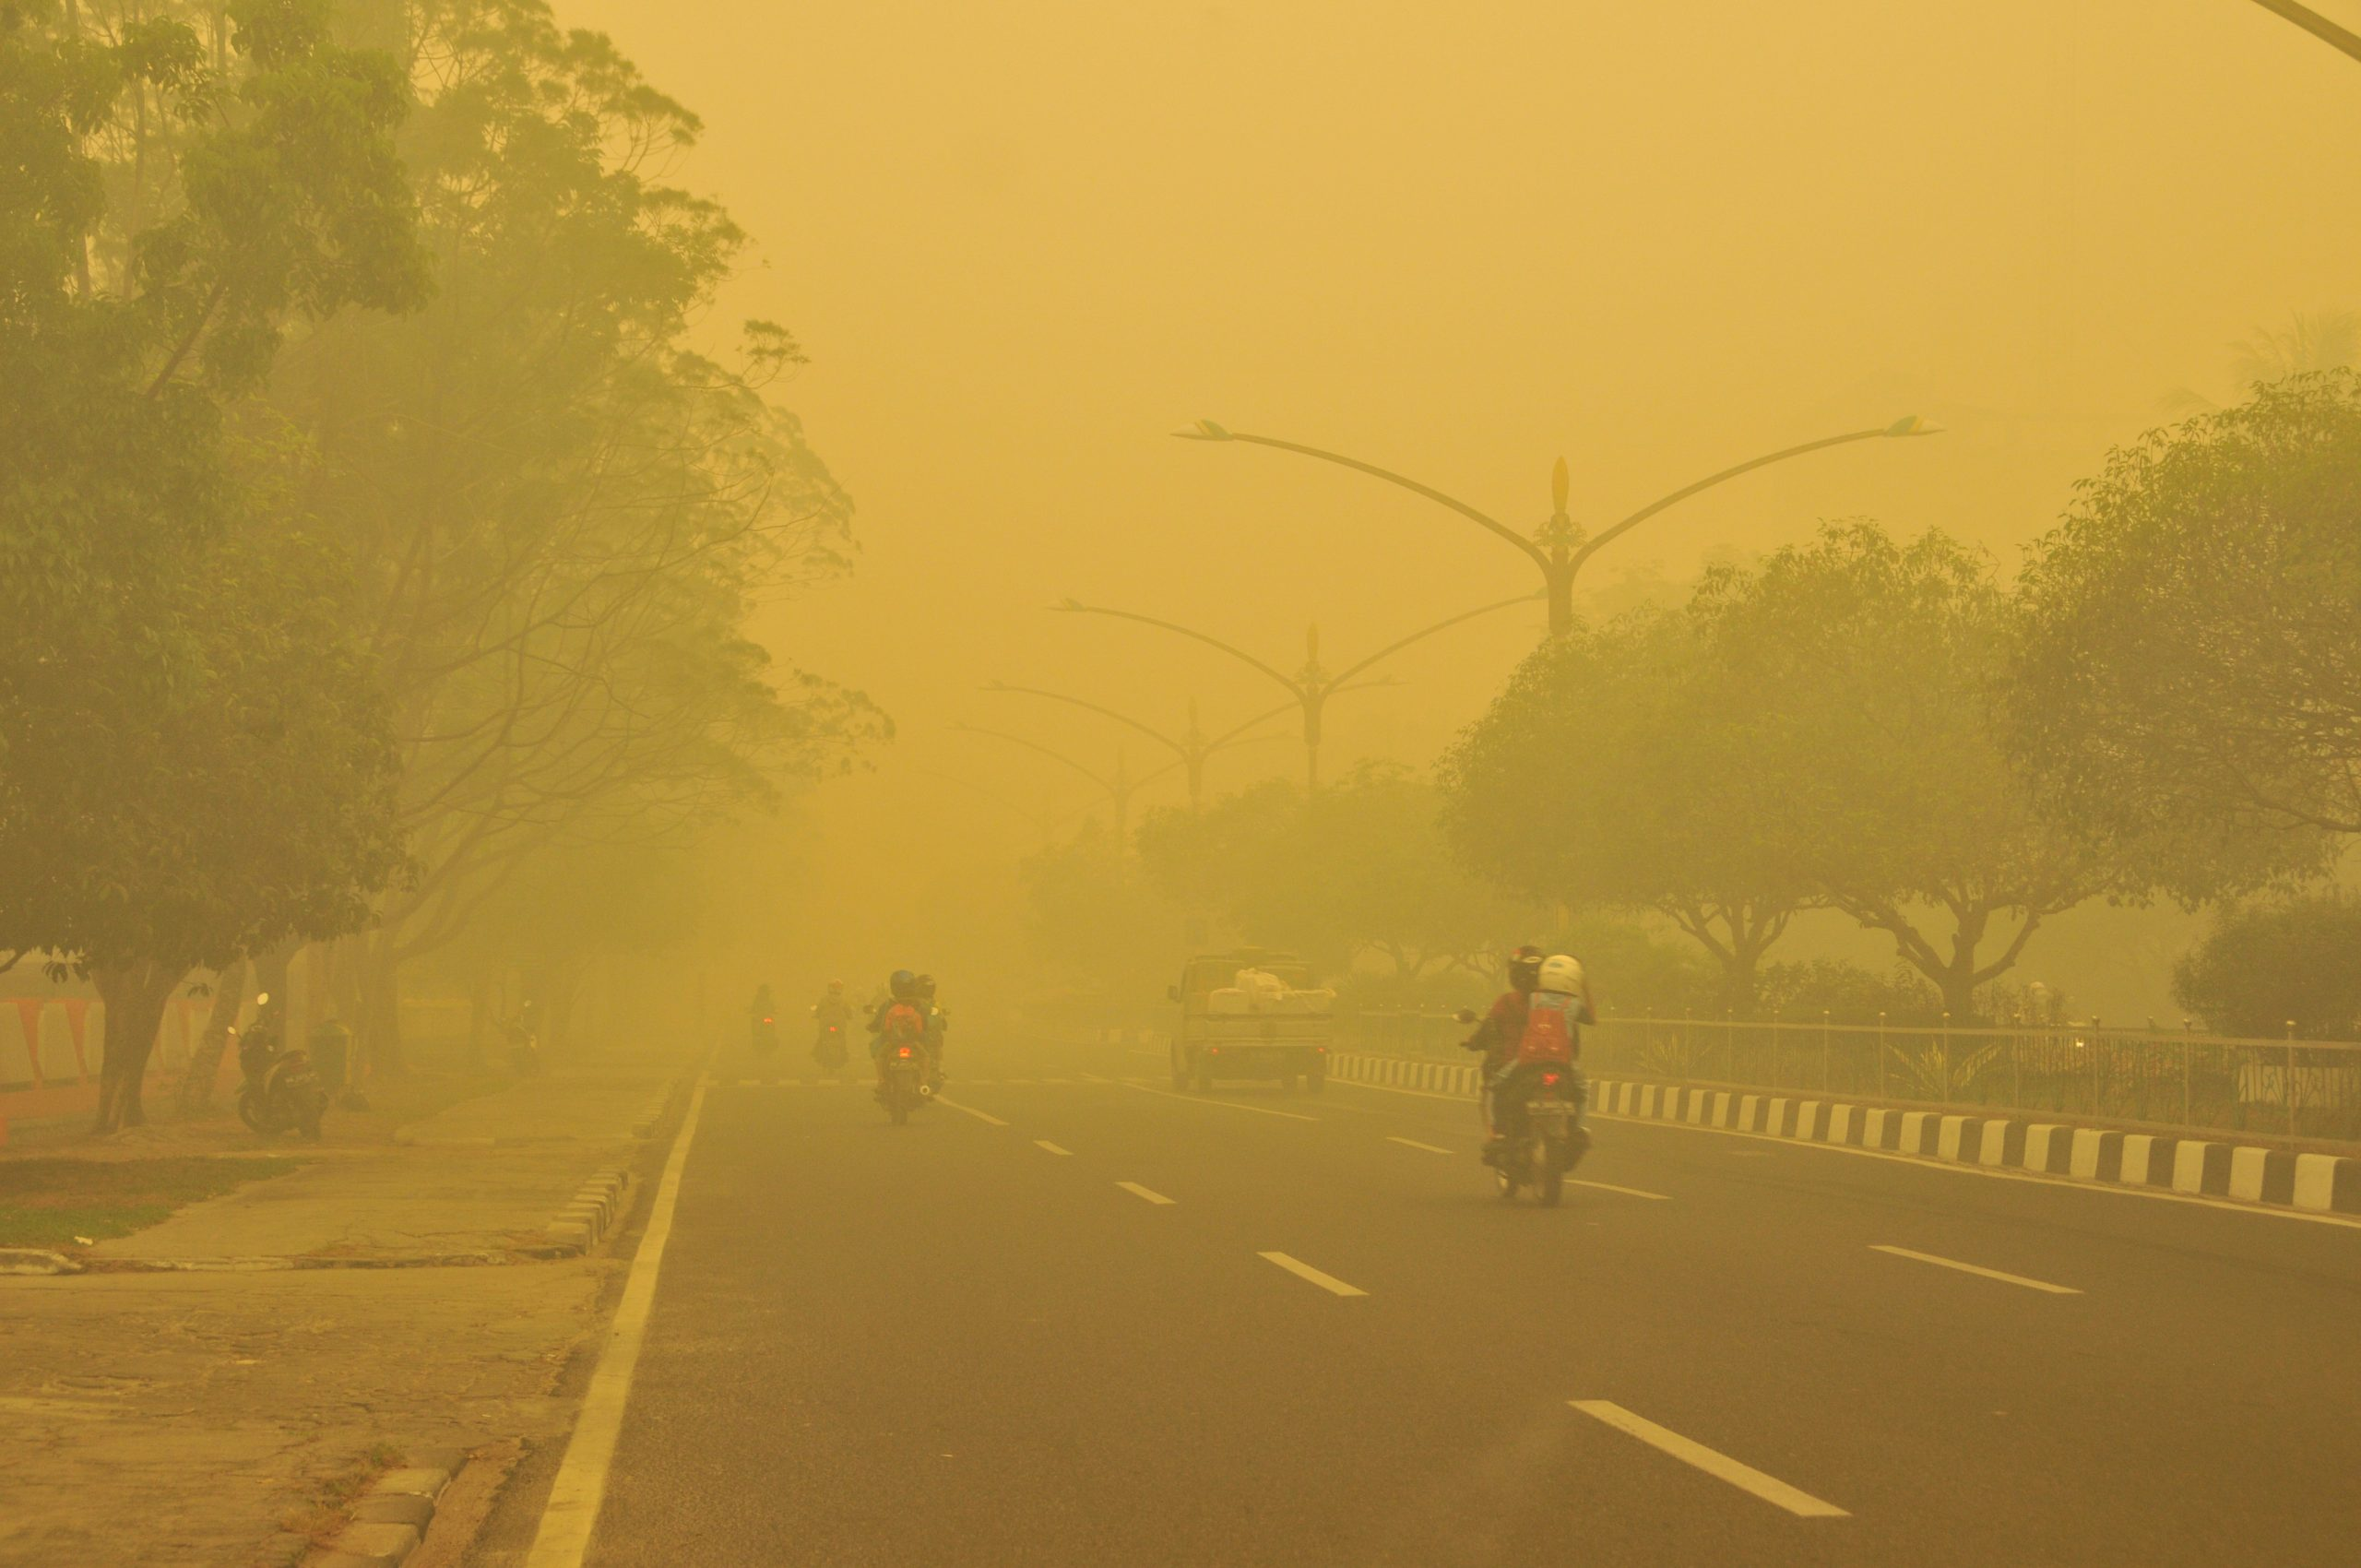 Landscape fires estimated to cause over 600 thousand premature deaths each year, many in children under five